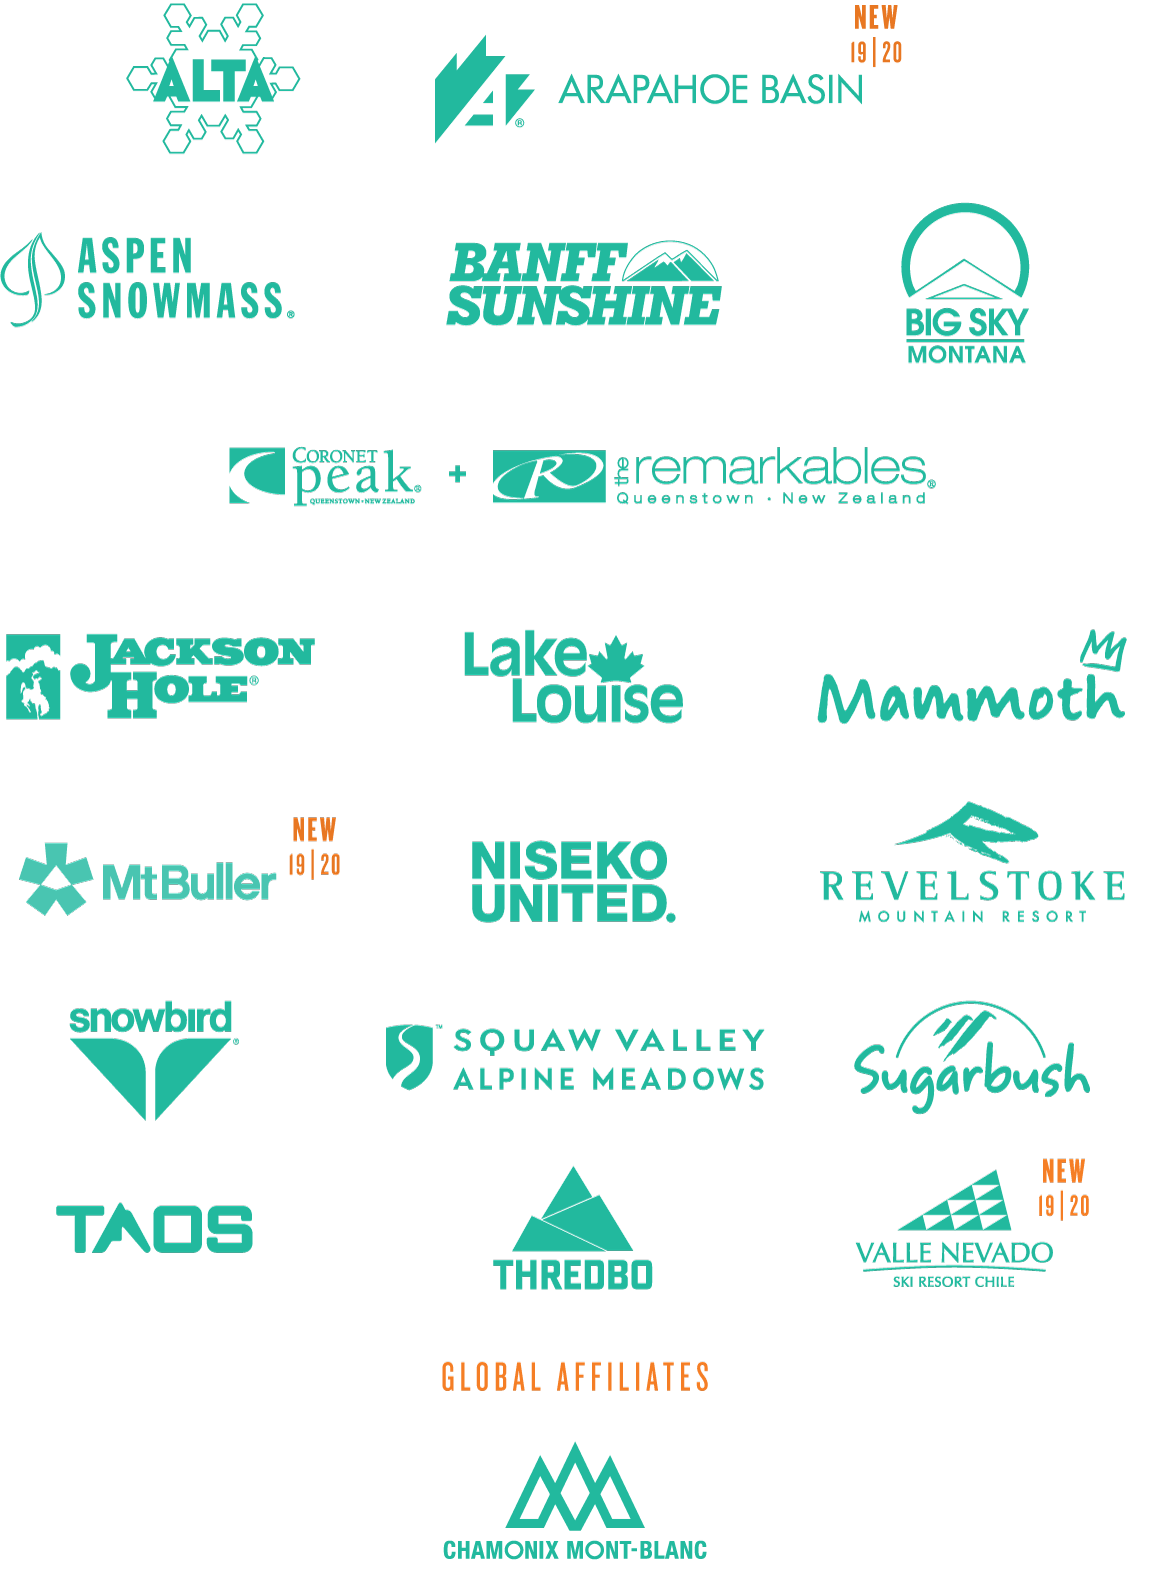 Mountain Collective 2019-20 member resort list